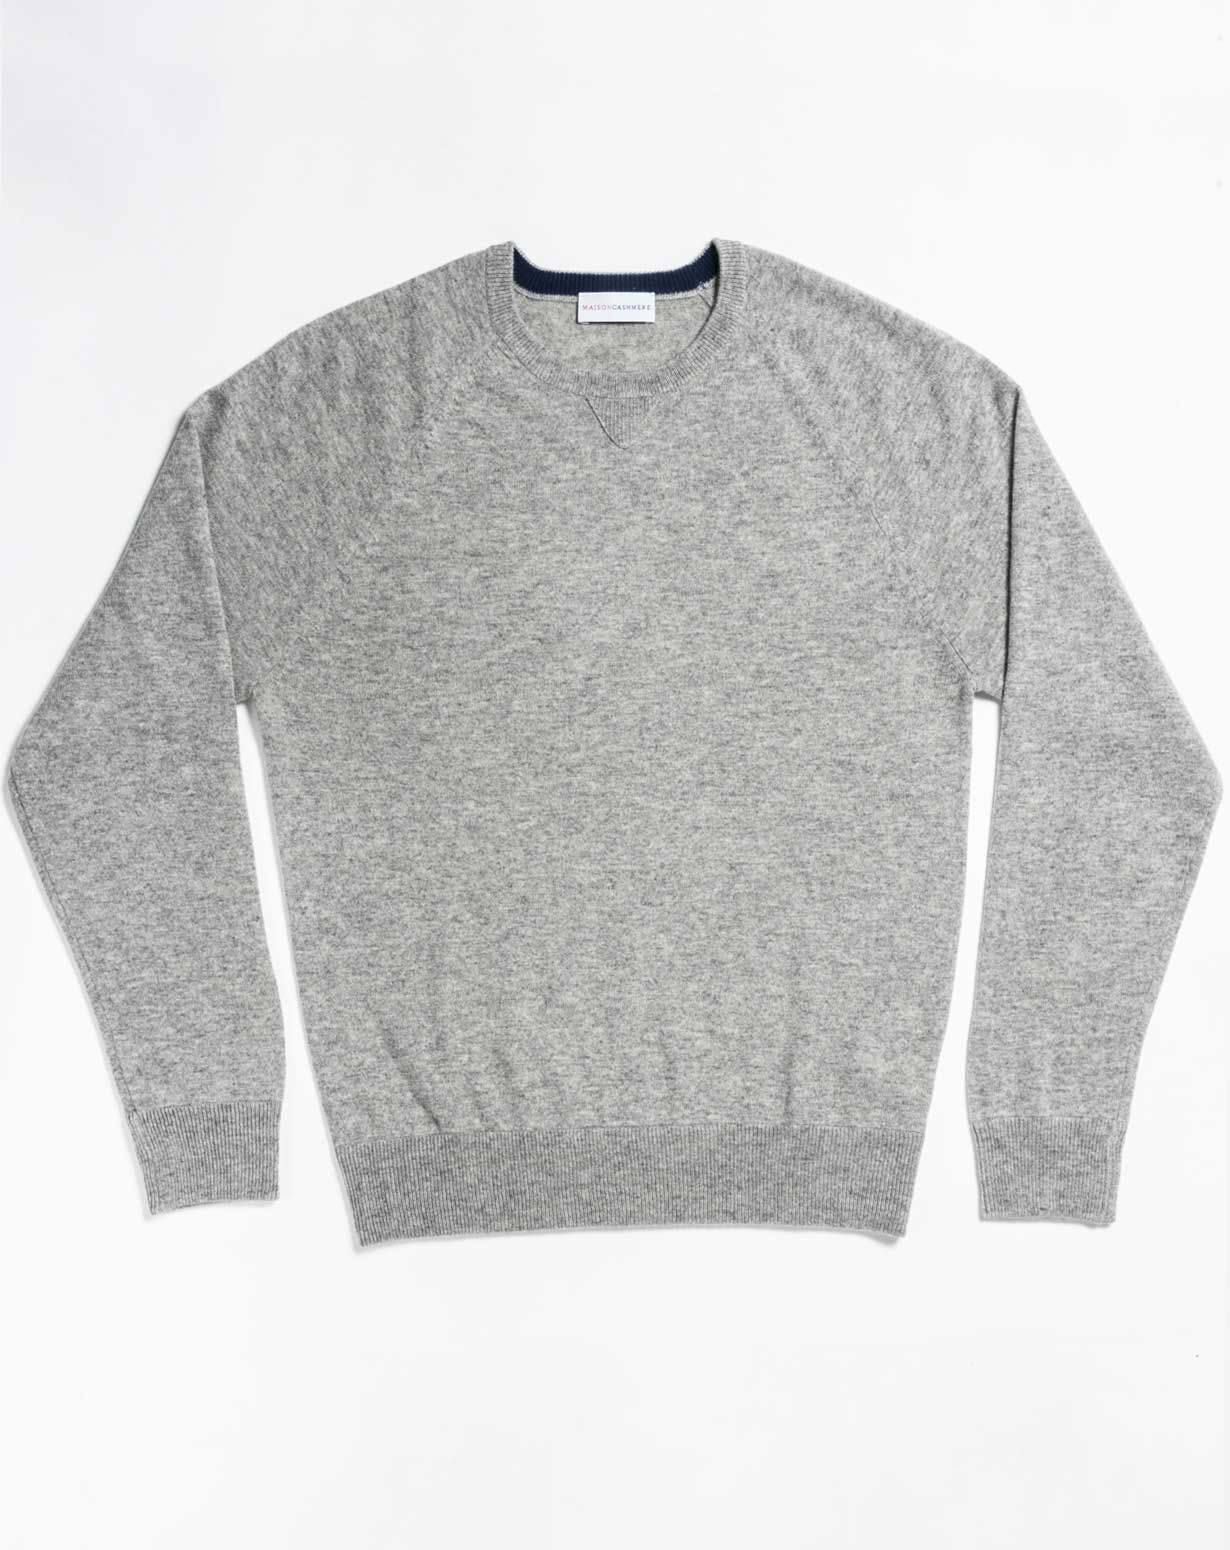 Men's Cashmere Plus Size - Sweatshirt